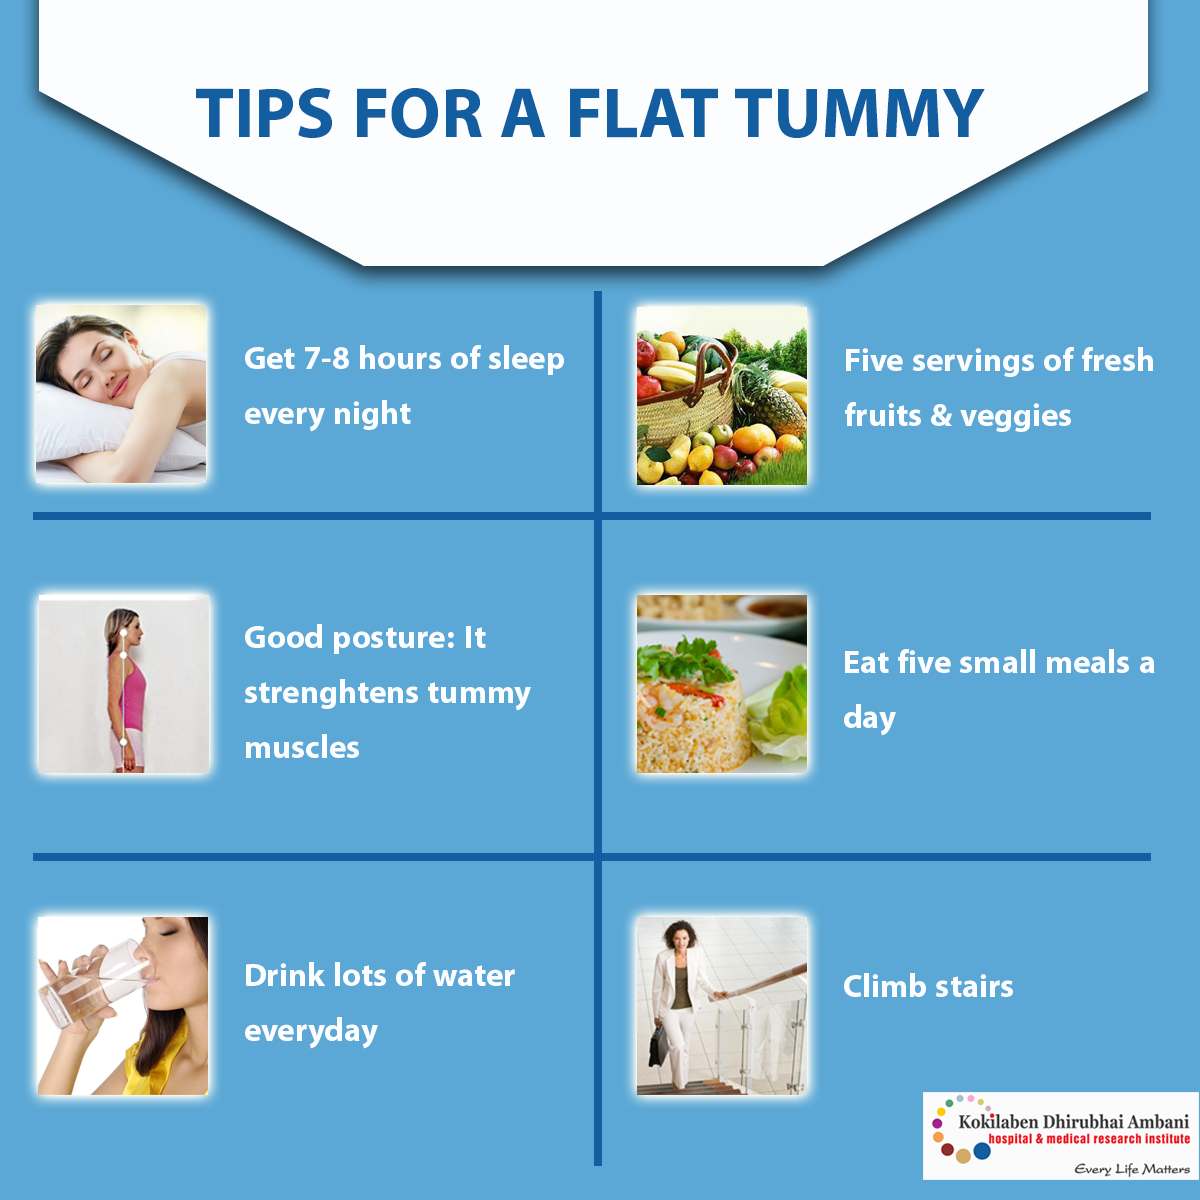 Simple tips to attain a flat tummy